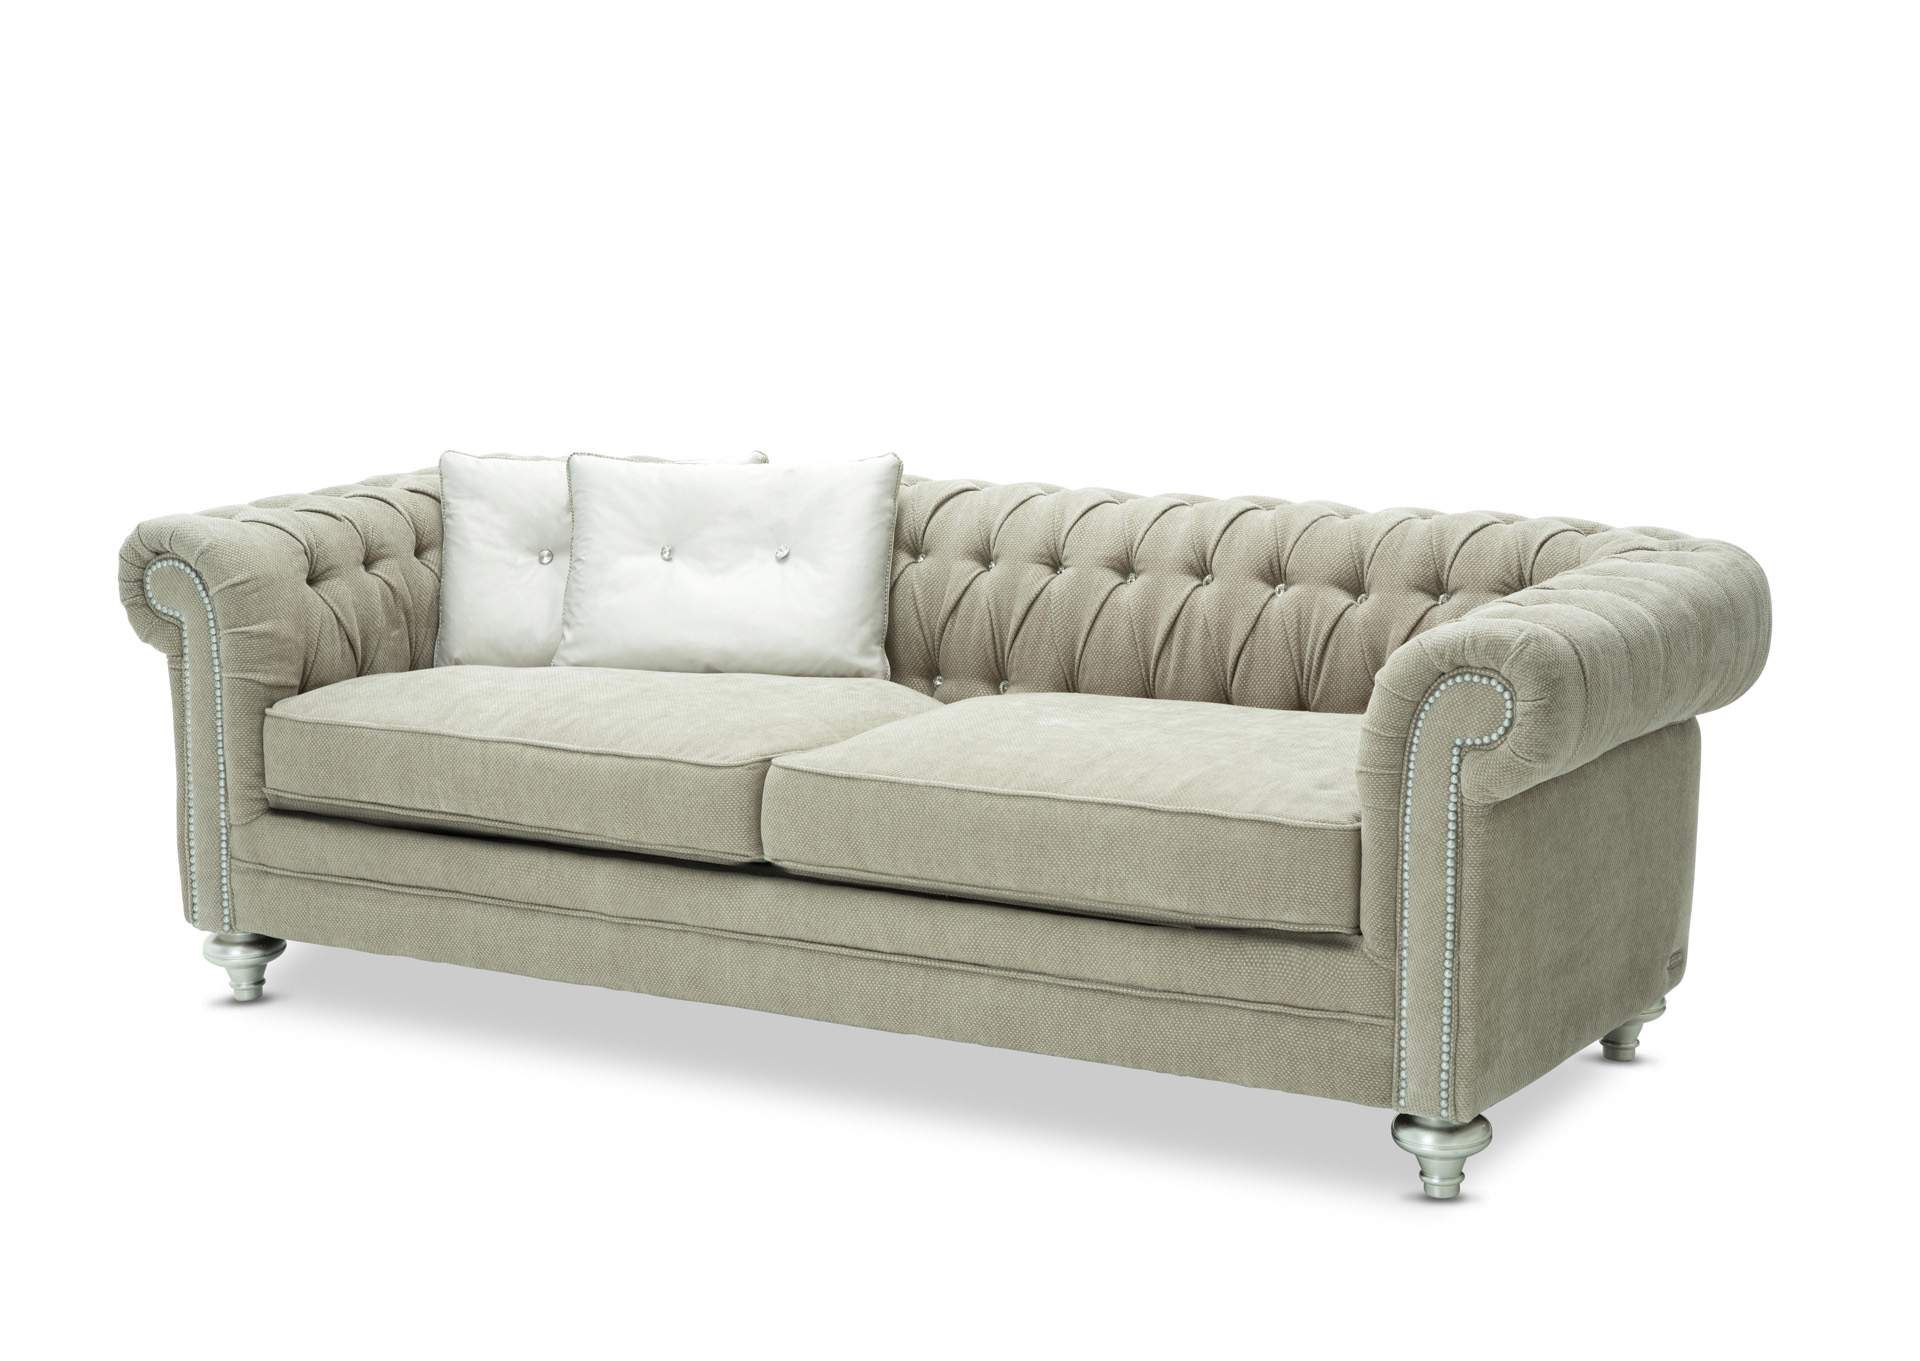 El Encanto Furniture By Yulissa Grand Masterpiece Platinum Sofa